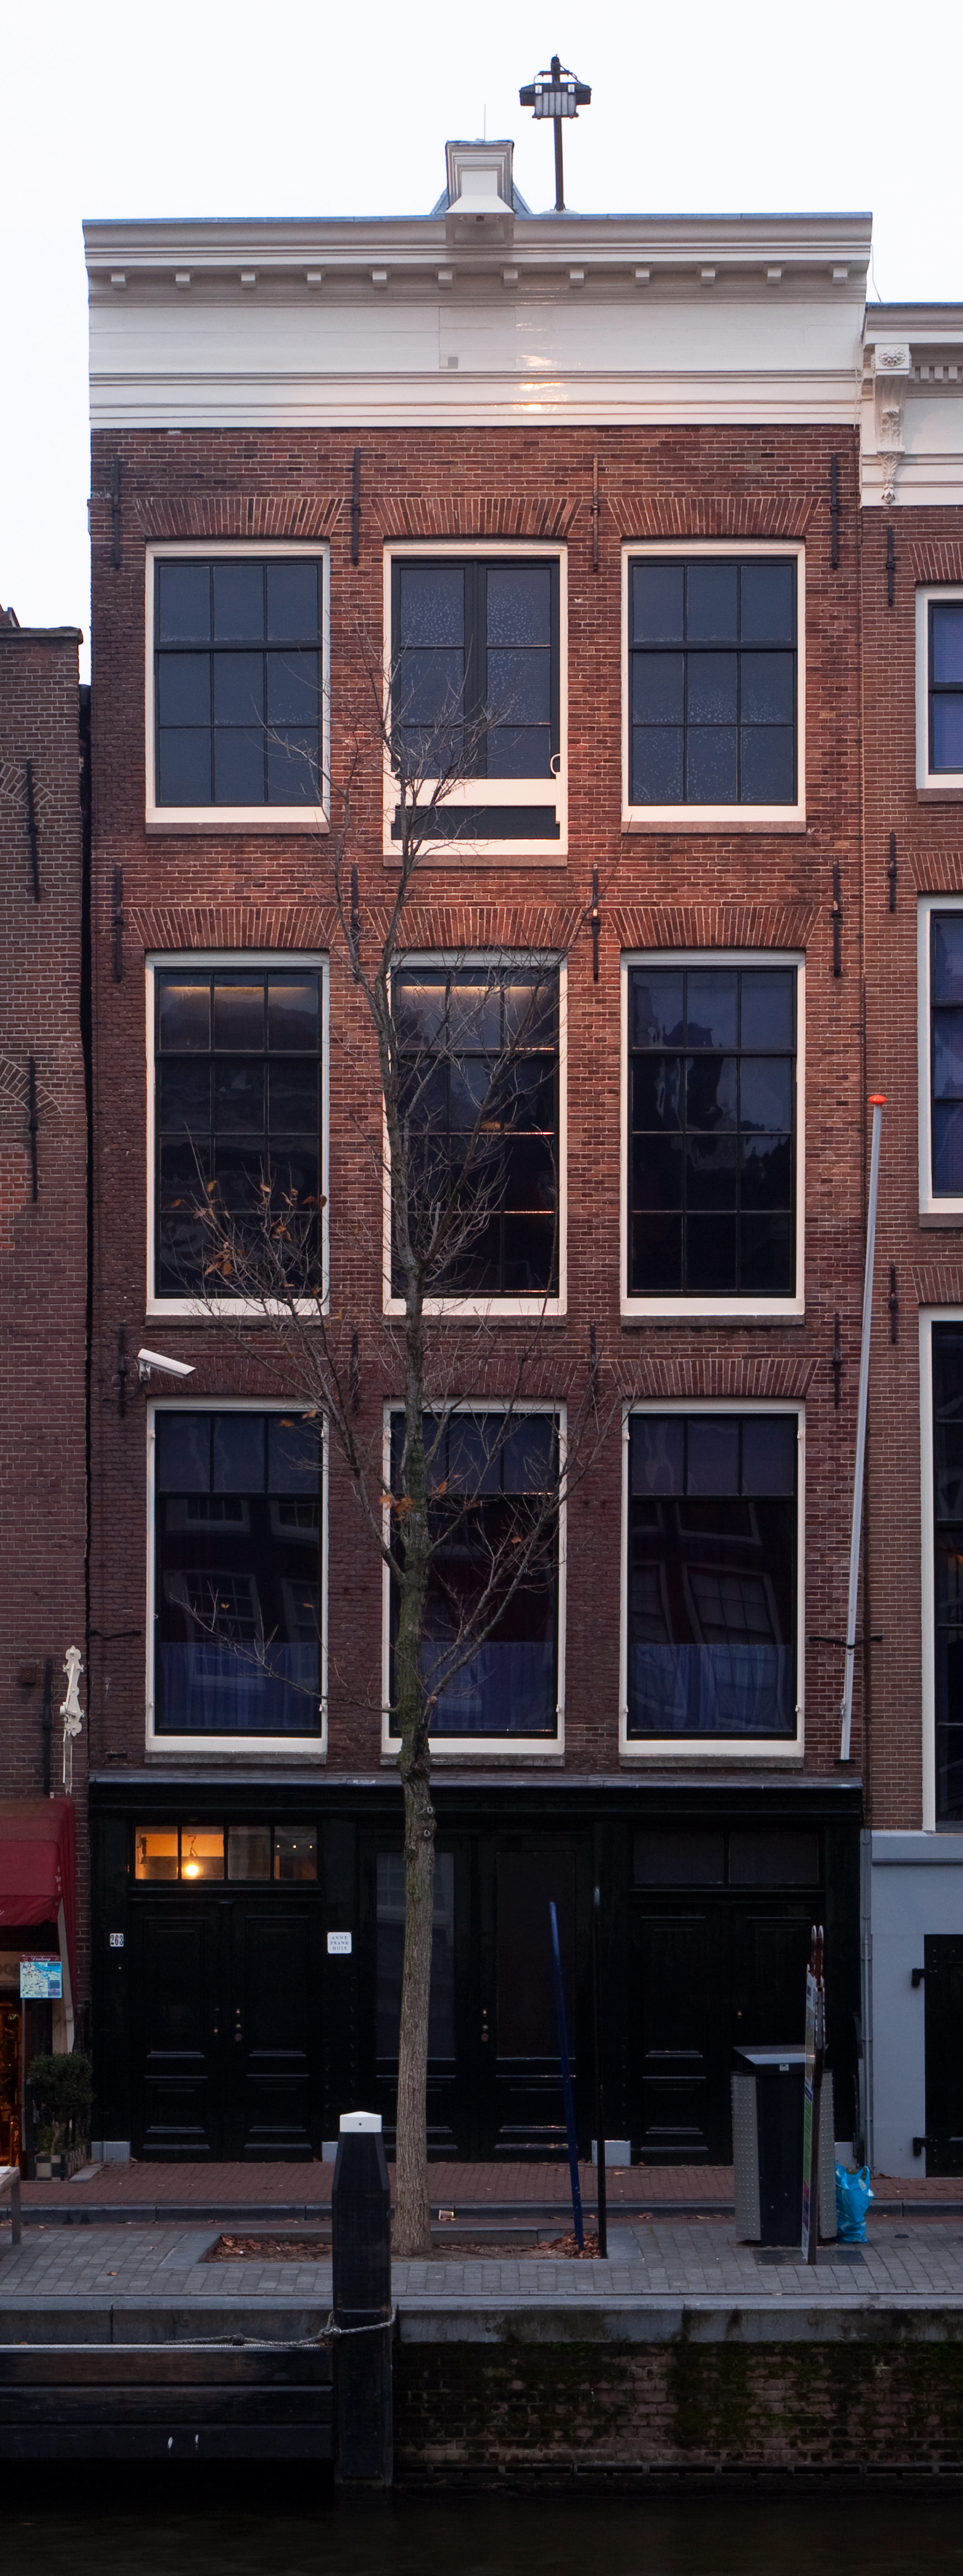 File:Anne Frank House.jpg - Wikimedia Commons